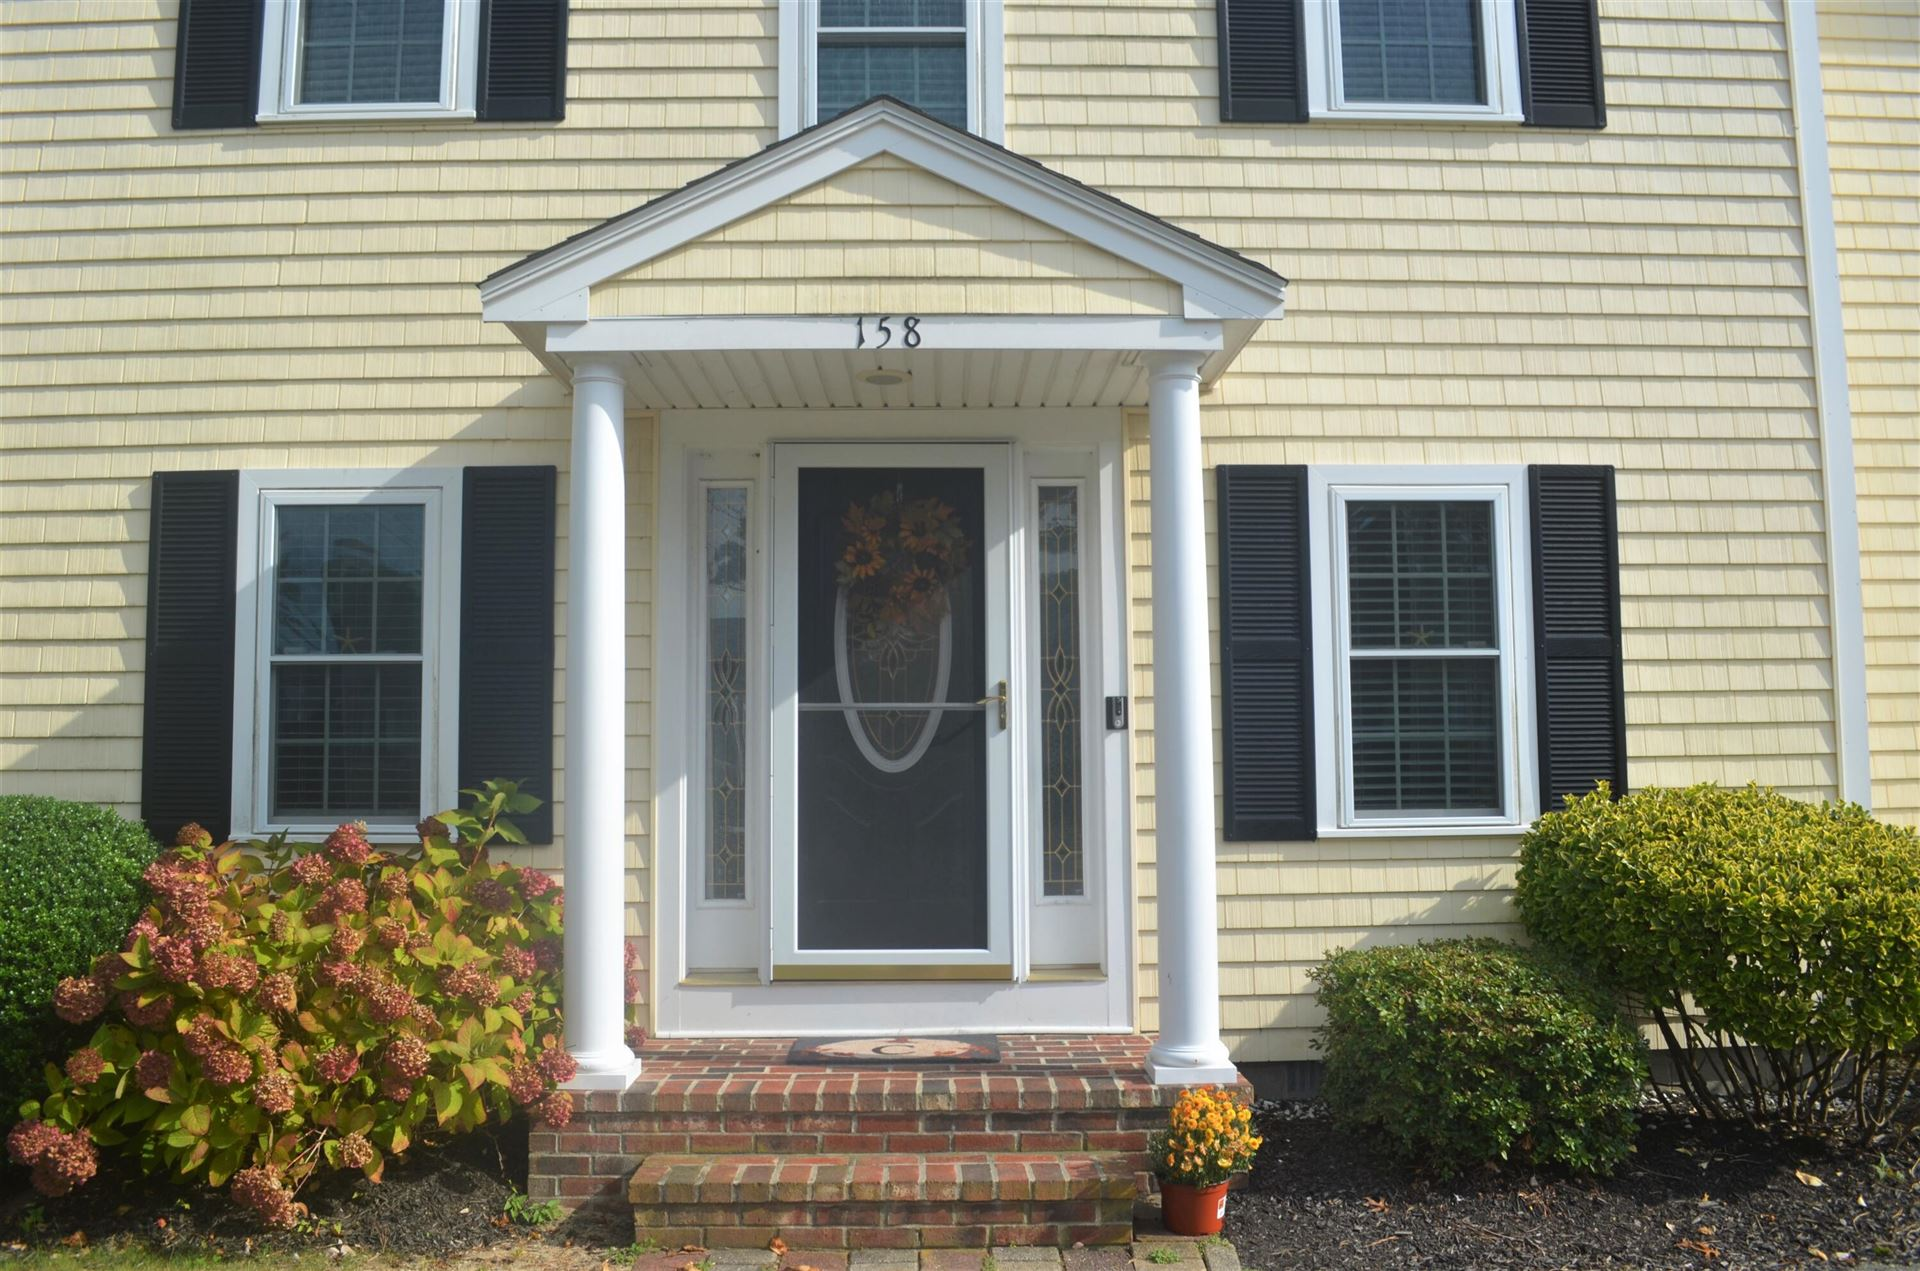 Photo of 158 Captain Chase Road, Dennis Port, MA 02639 (MLS # 22106334)